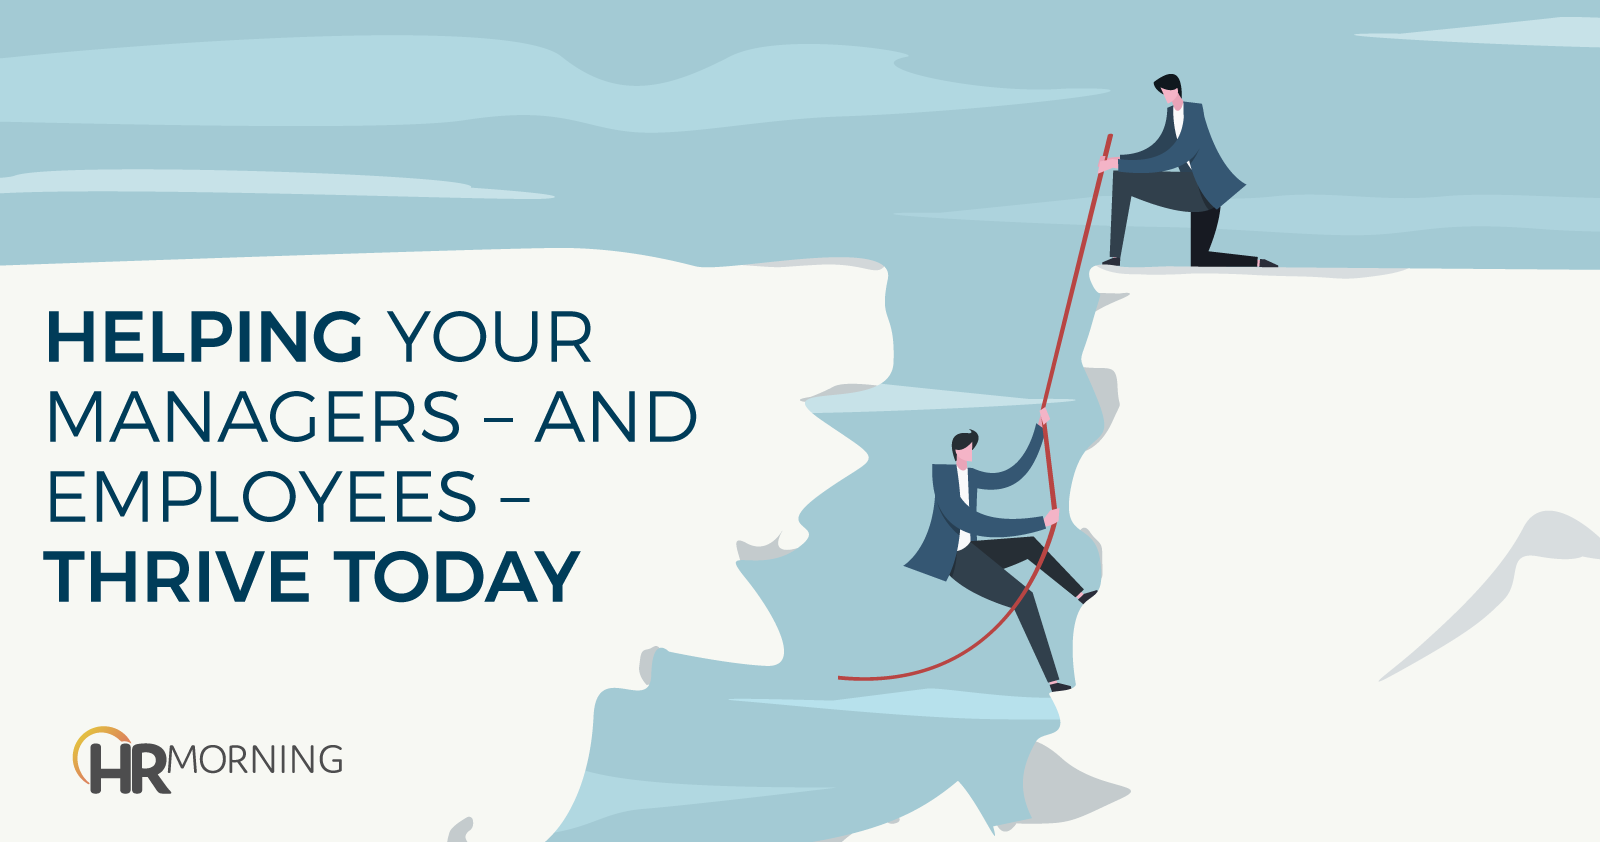 Helping Your Managers And Employees Thrive Today